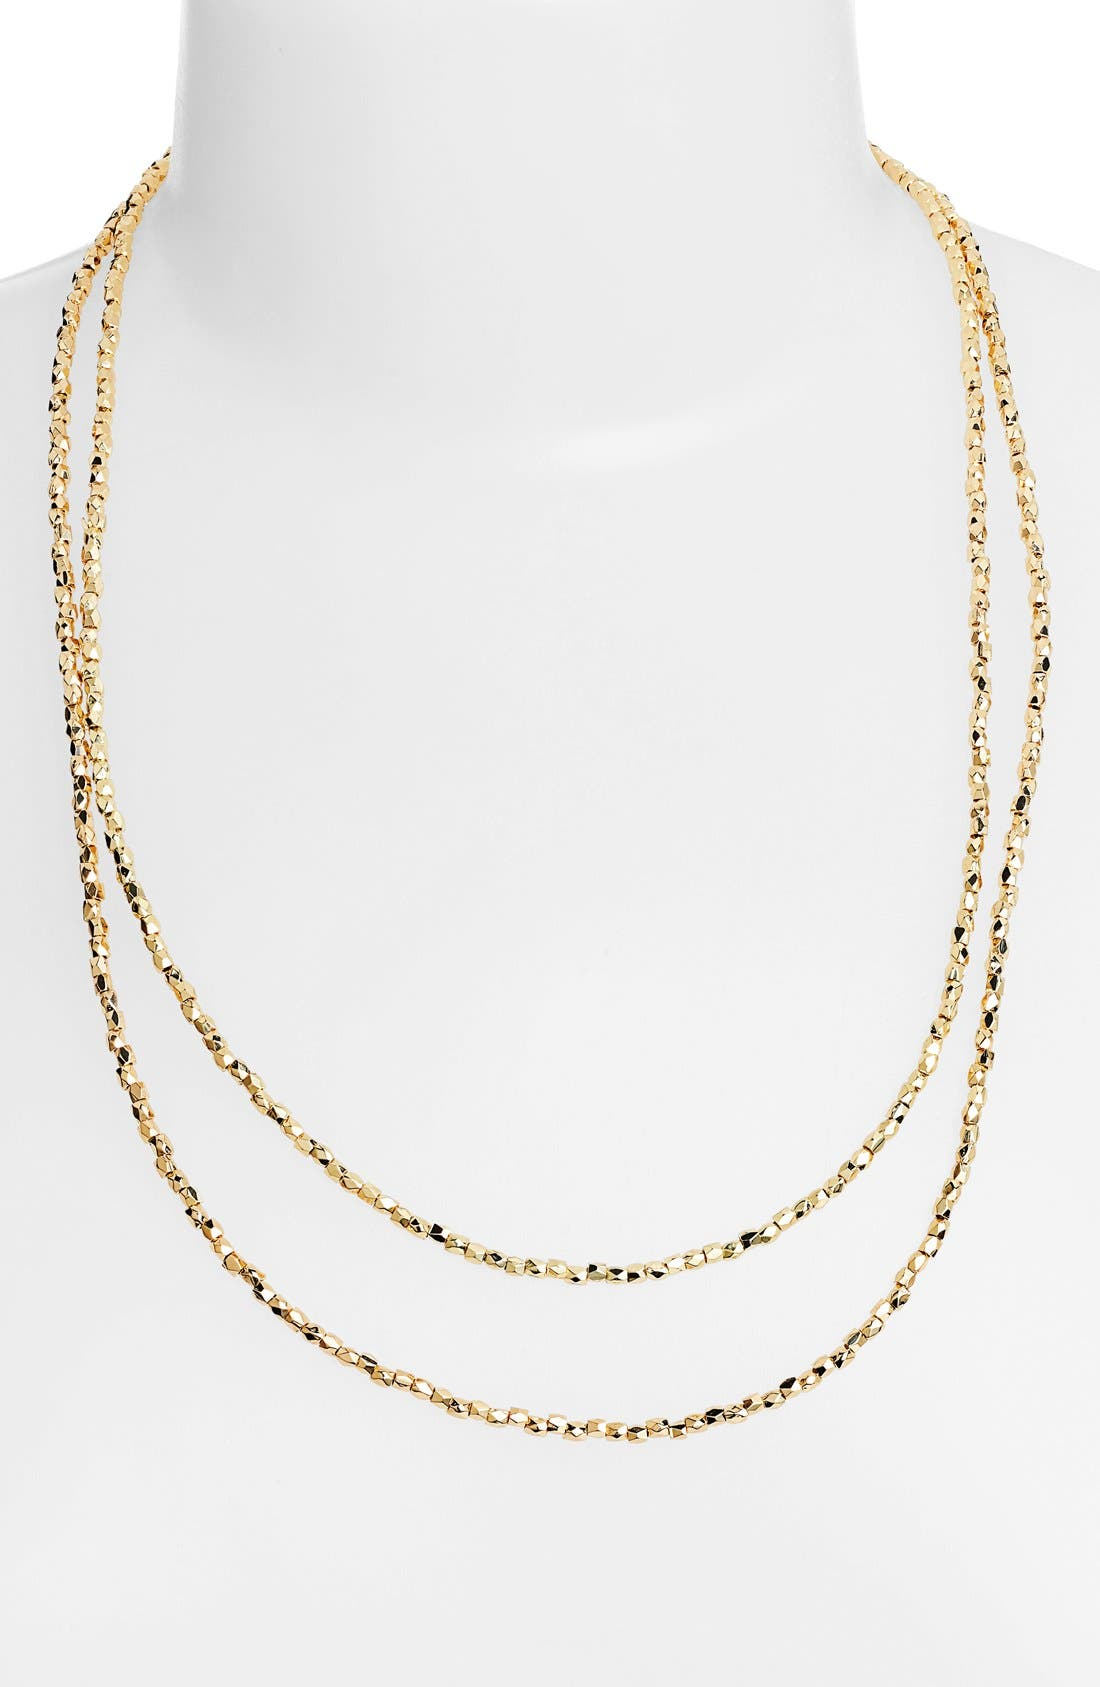 Main Image - Nordstrom 'Layers of Love' Extra Long Bead Necklace